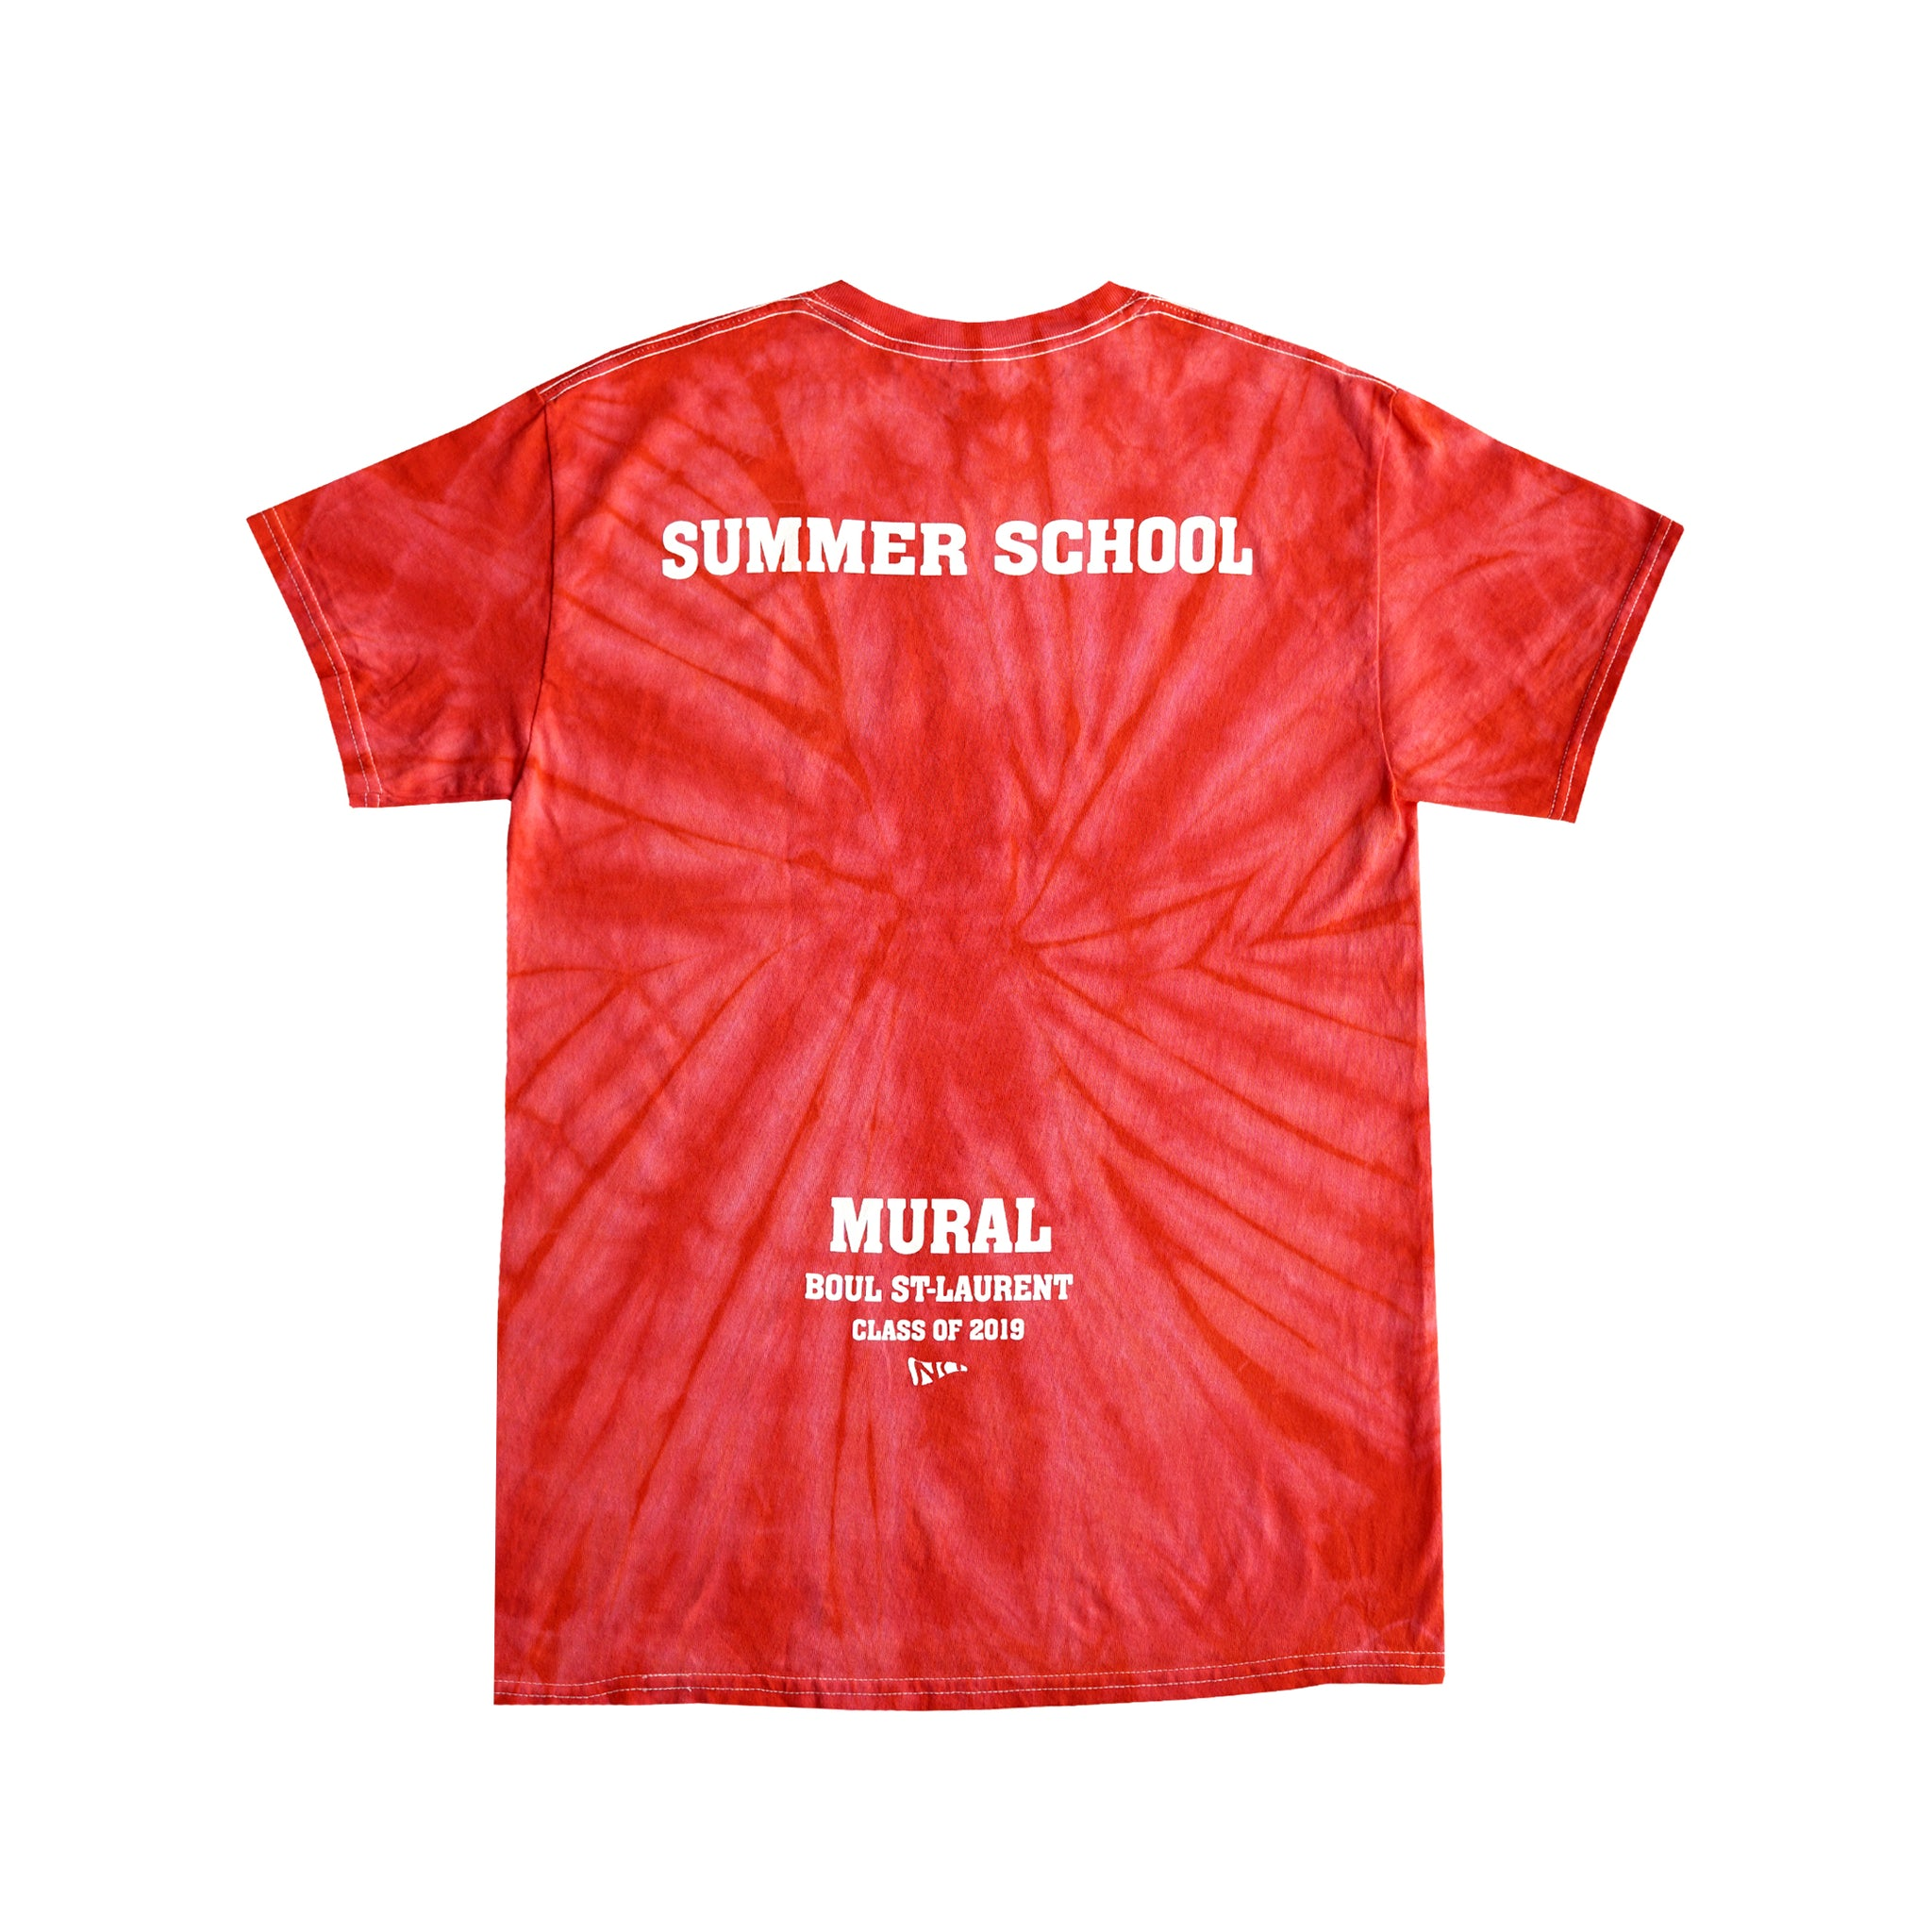 SUMMER SCHOOL - TIE DYE - RED